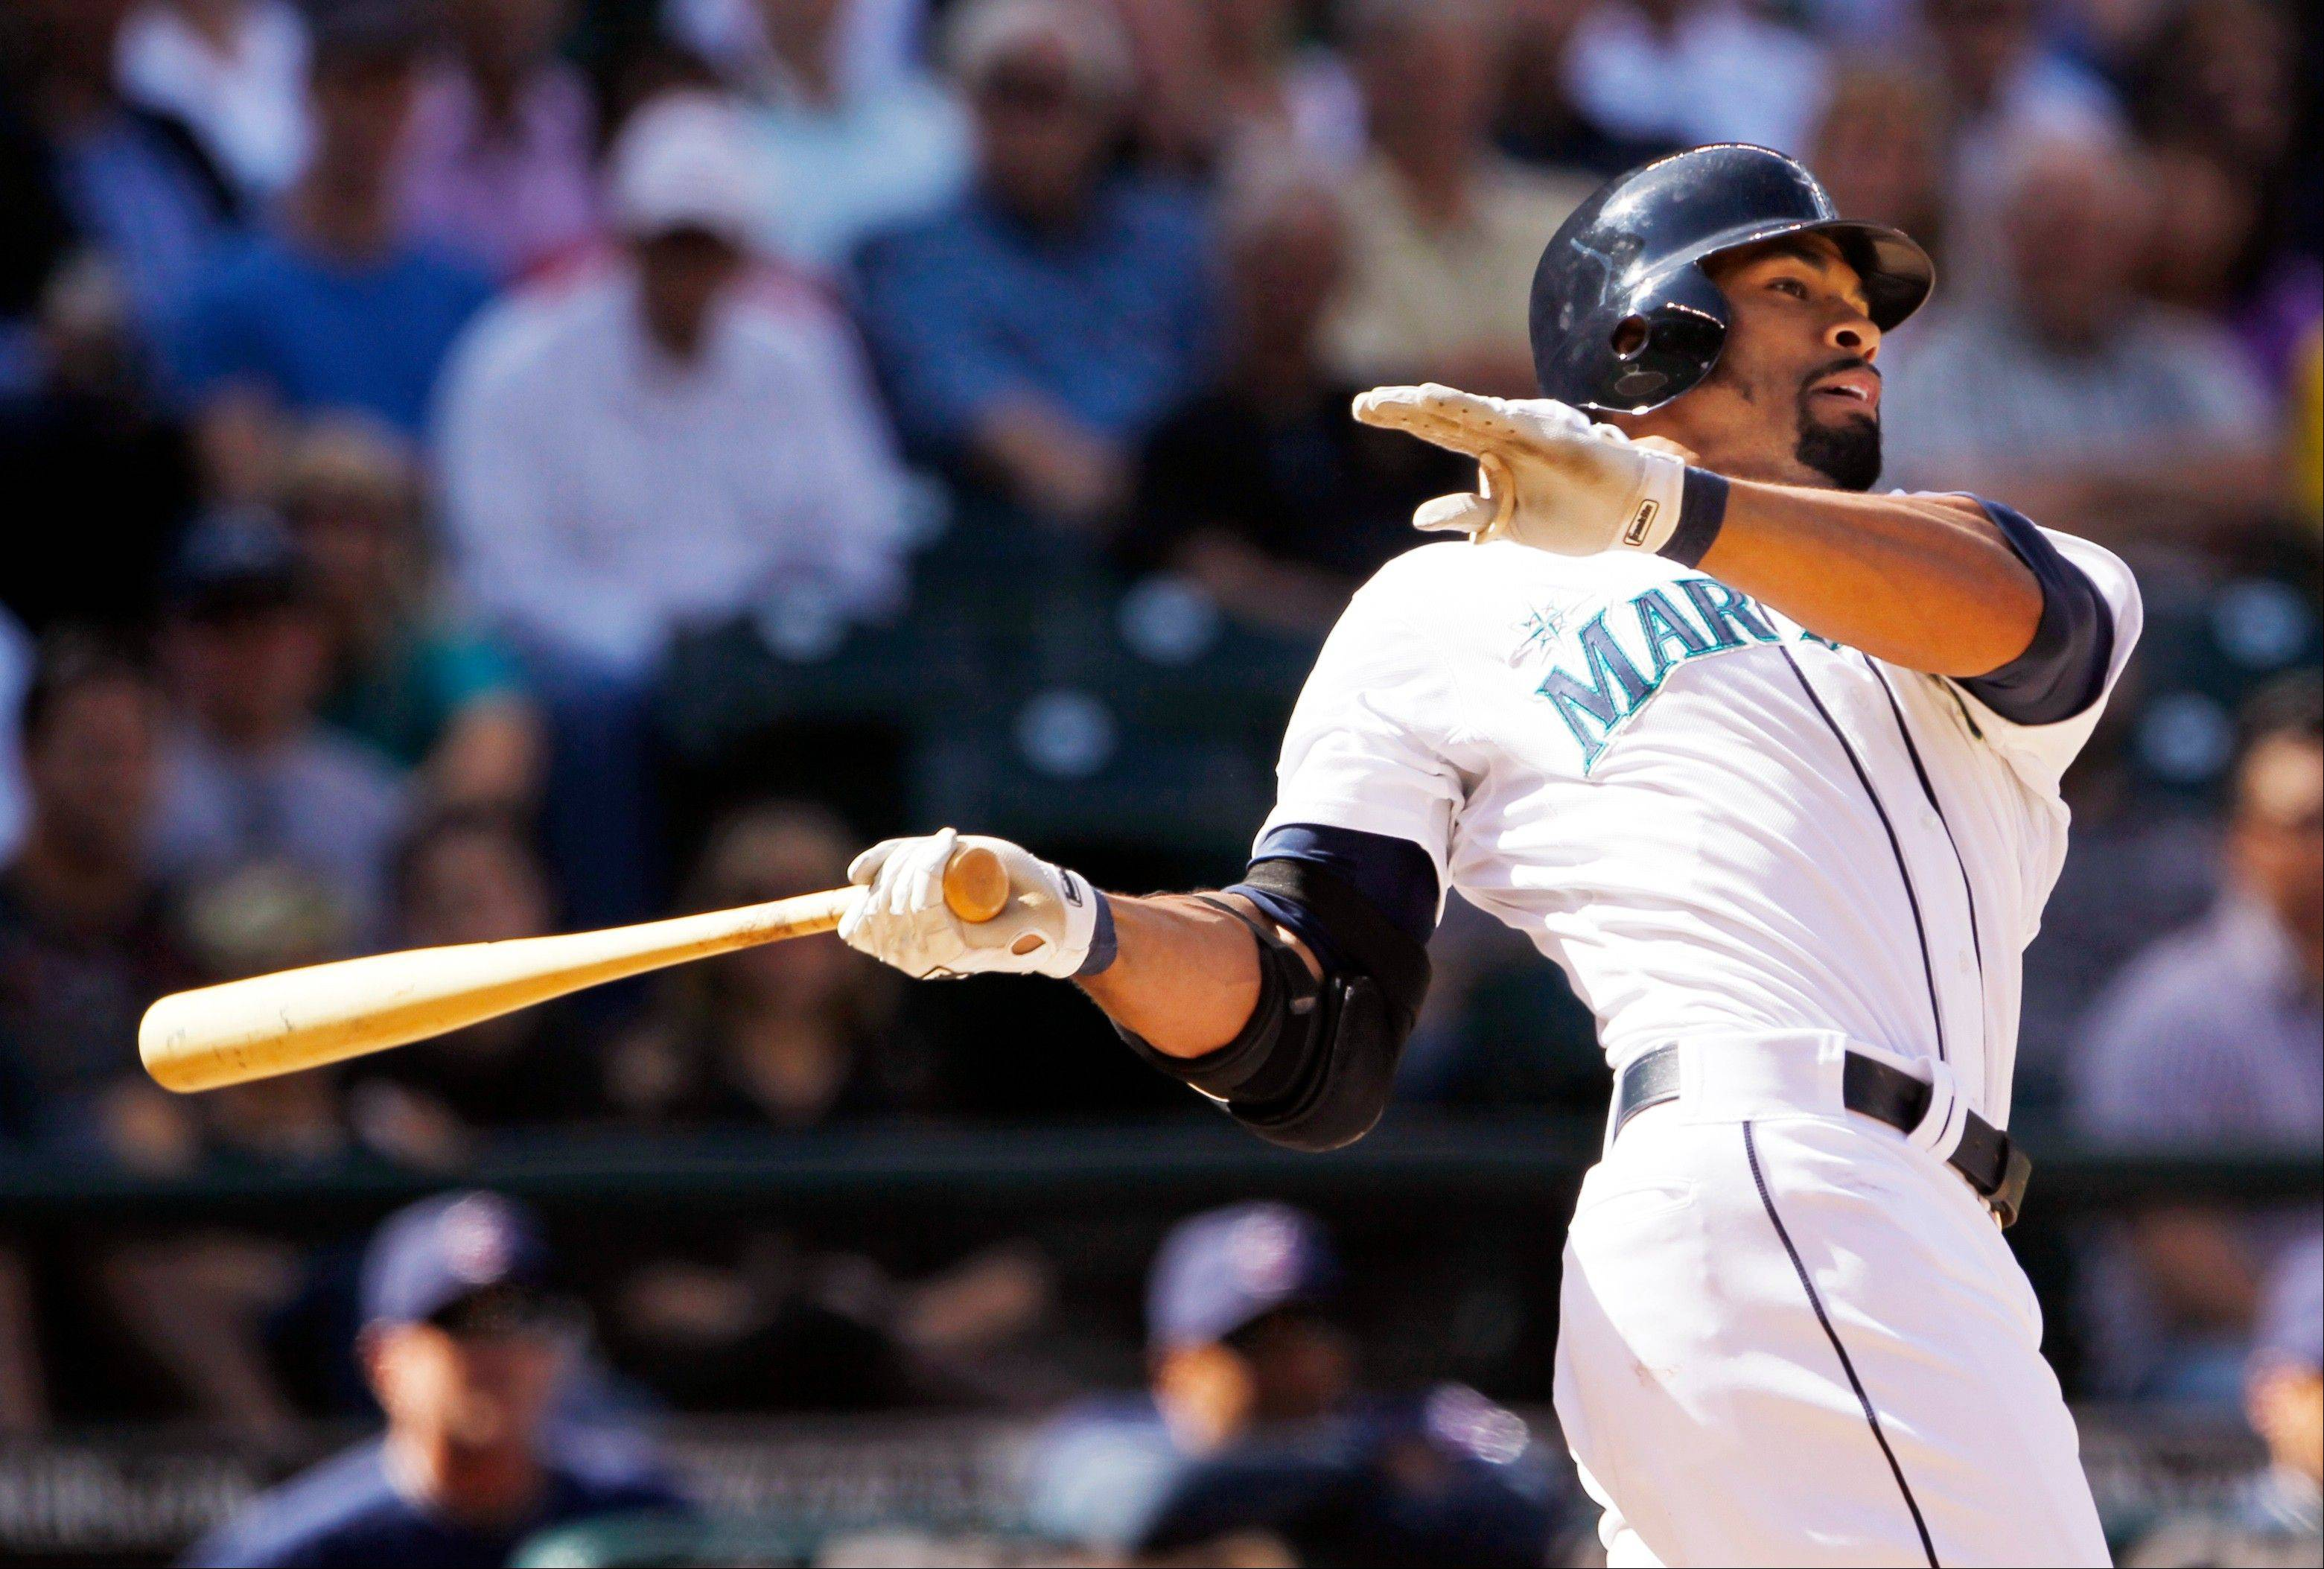 The Mariners' Eric Thames hits a two-run double against the Cleveland Indians in the eighth inning Wednesday in Seattle.